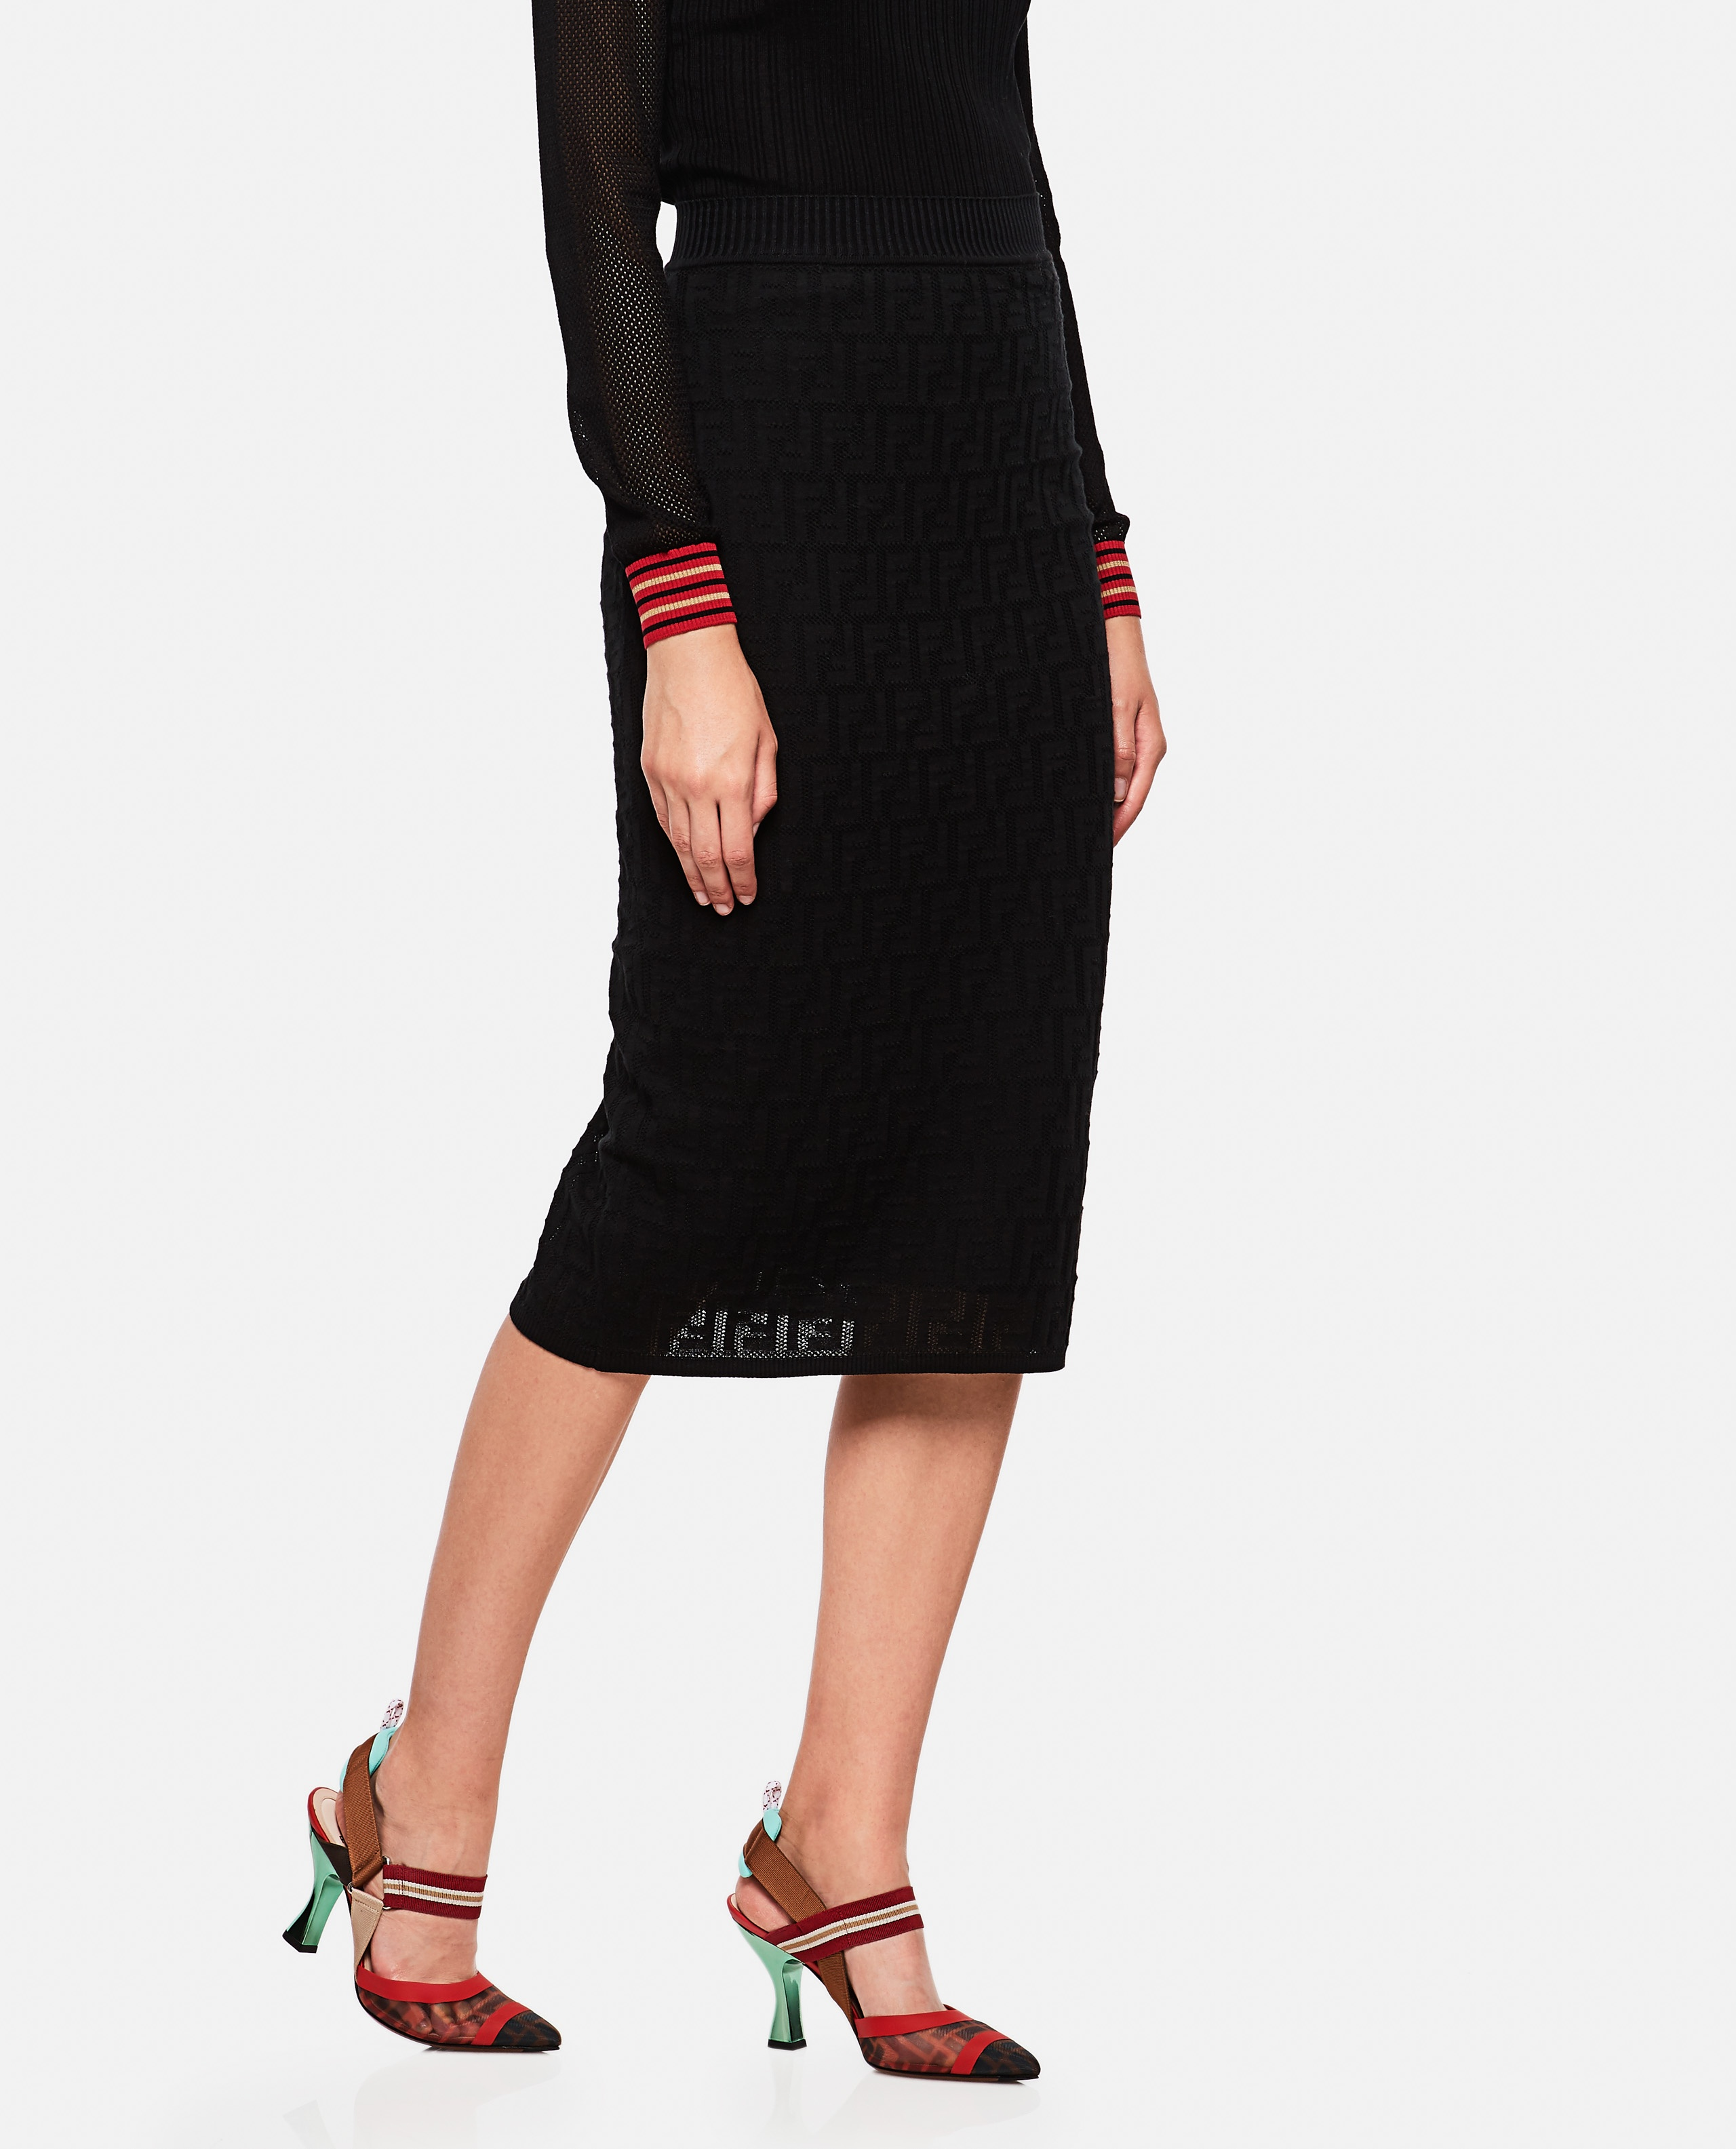 Knitted Skirt With Ff Motif Women Fendi 000190250028262 1